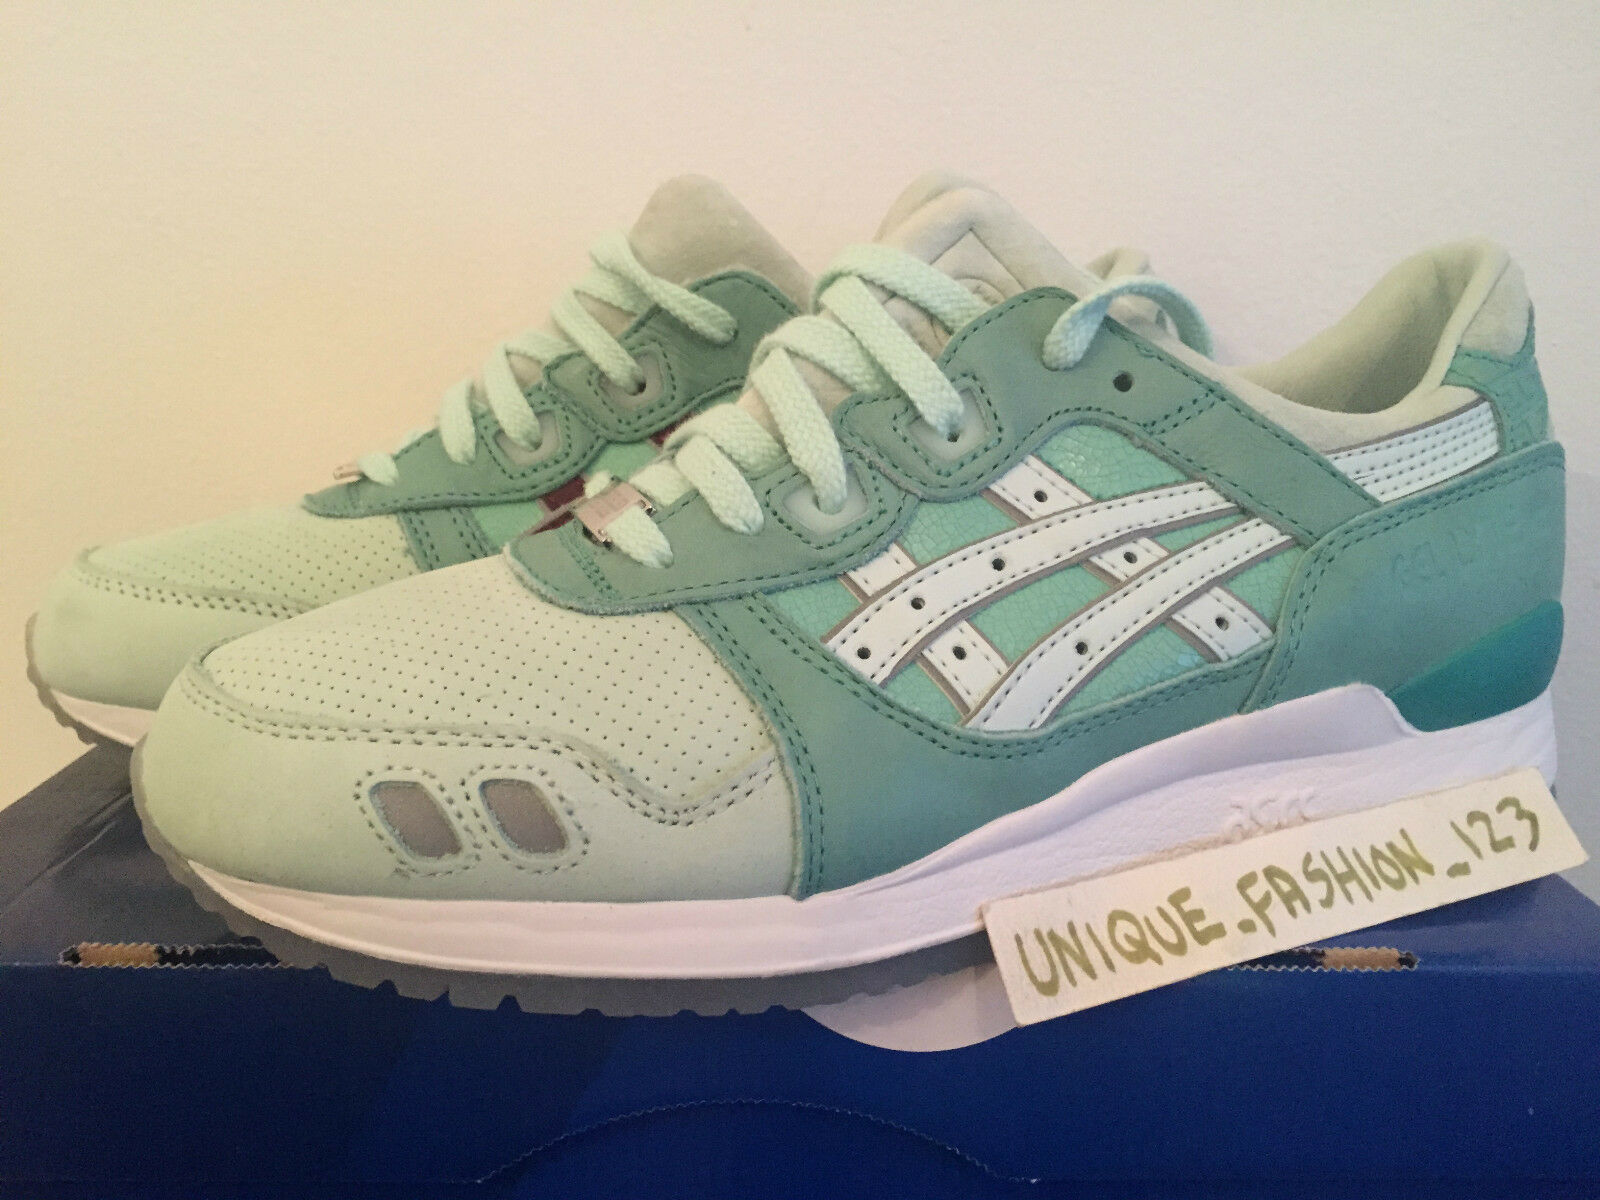 ASICS GEL LYTE III 3 HAL HIGHS HIGHS HIGHS AND LOWS & US 8.5 UK 7.5 41 SILVERSCREEN SCREEN f19622